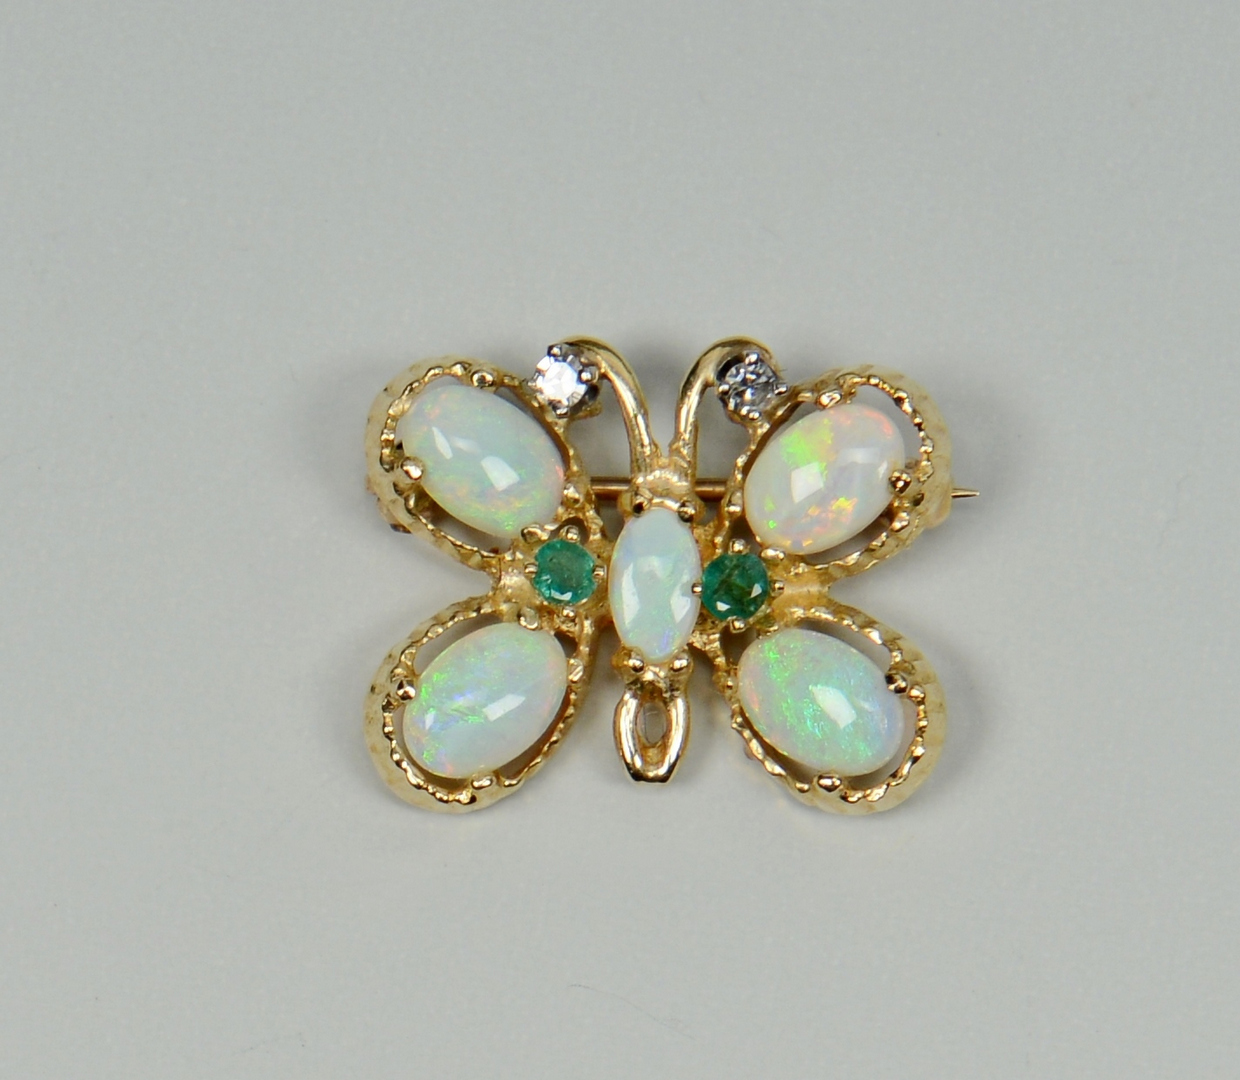 Lot 3088224: 14k Spray Pin, Butterfly pin, Cameo Brooch